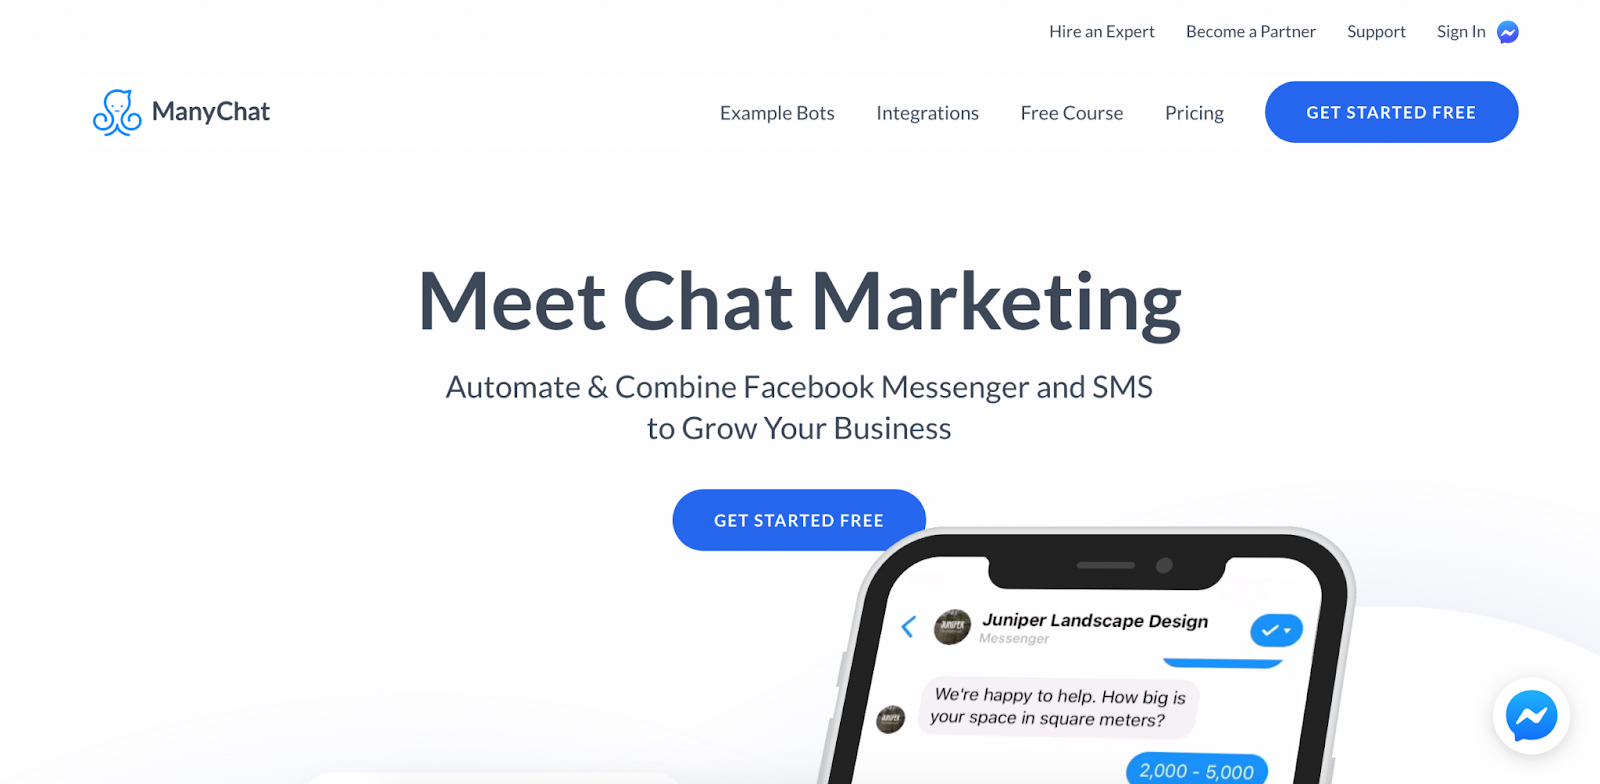 ManyChat Marketing Automation Tool